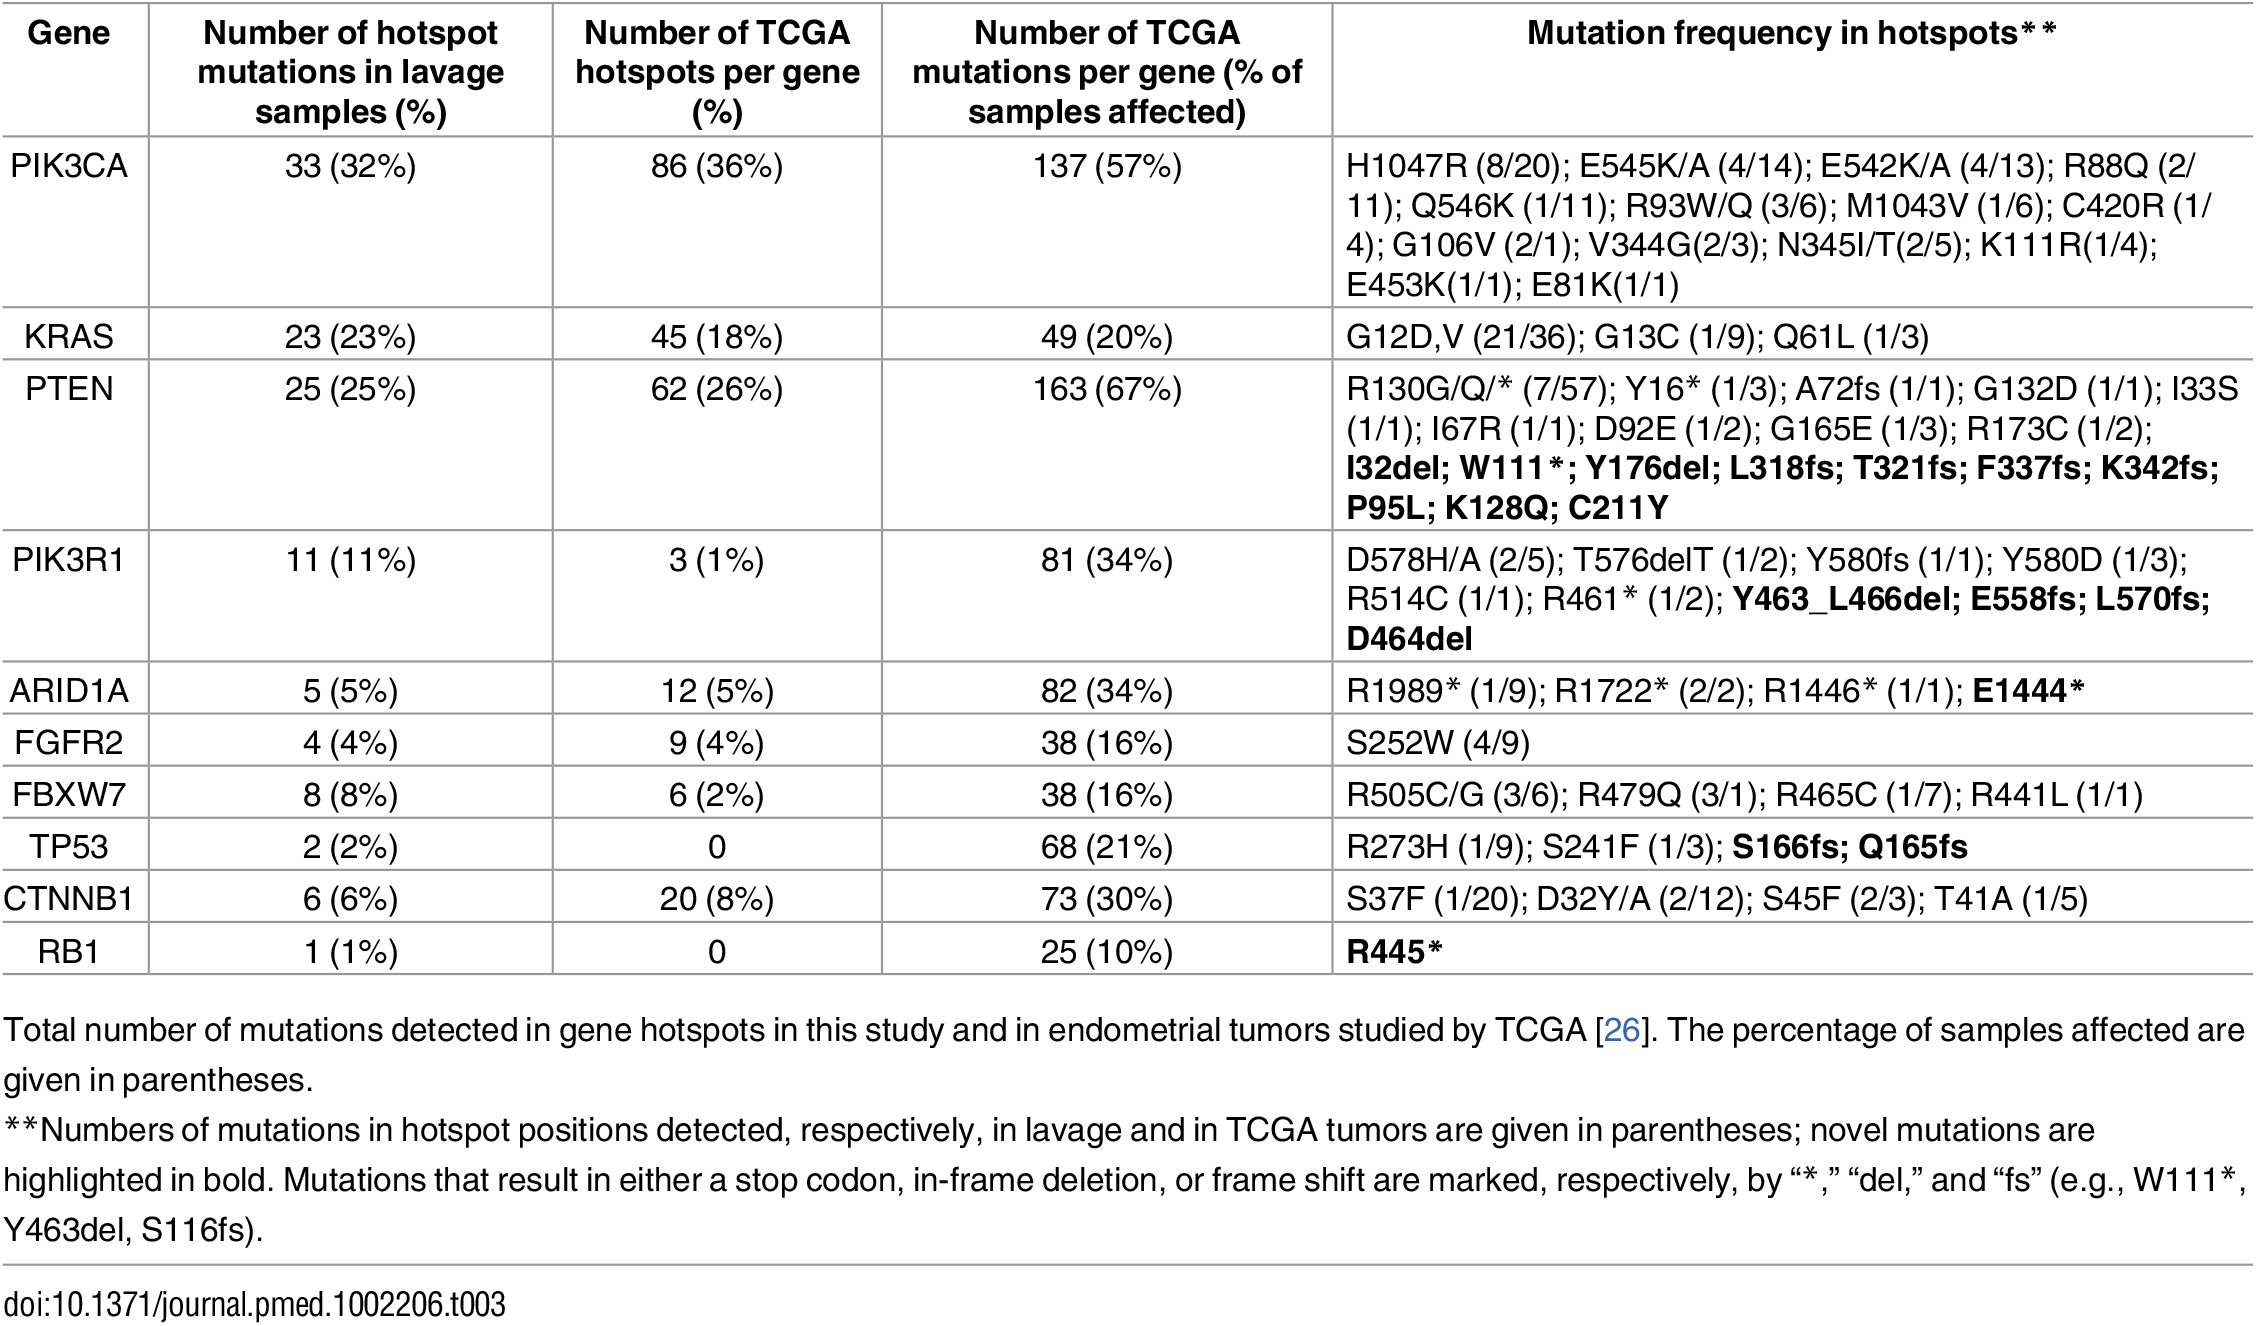 Cancer driver mutations identified in uterine lavage samples and their comparison to TCGA statistics.